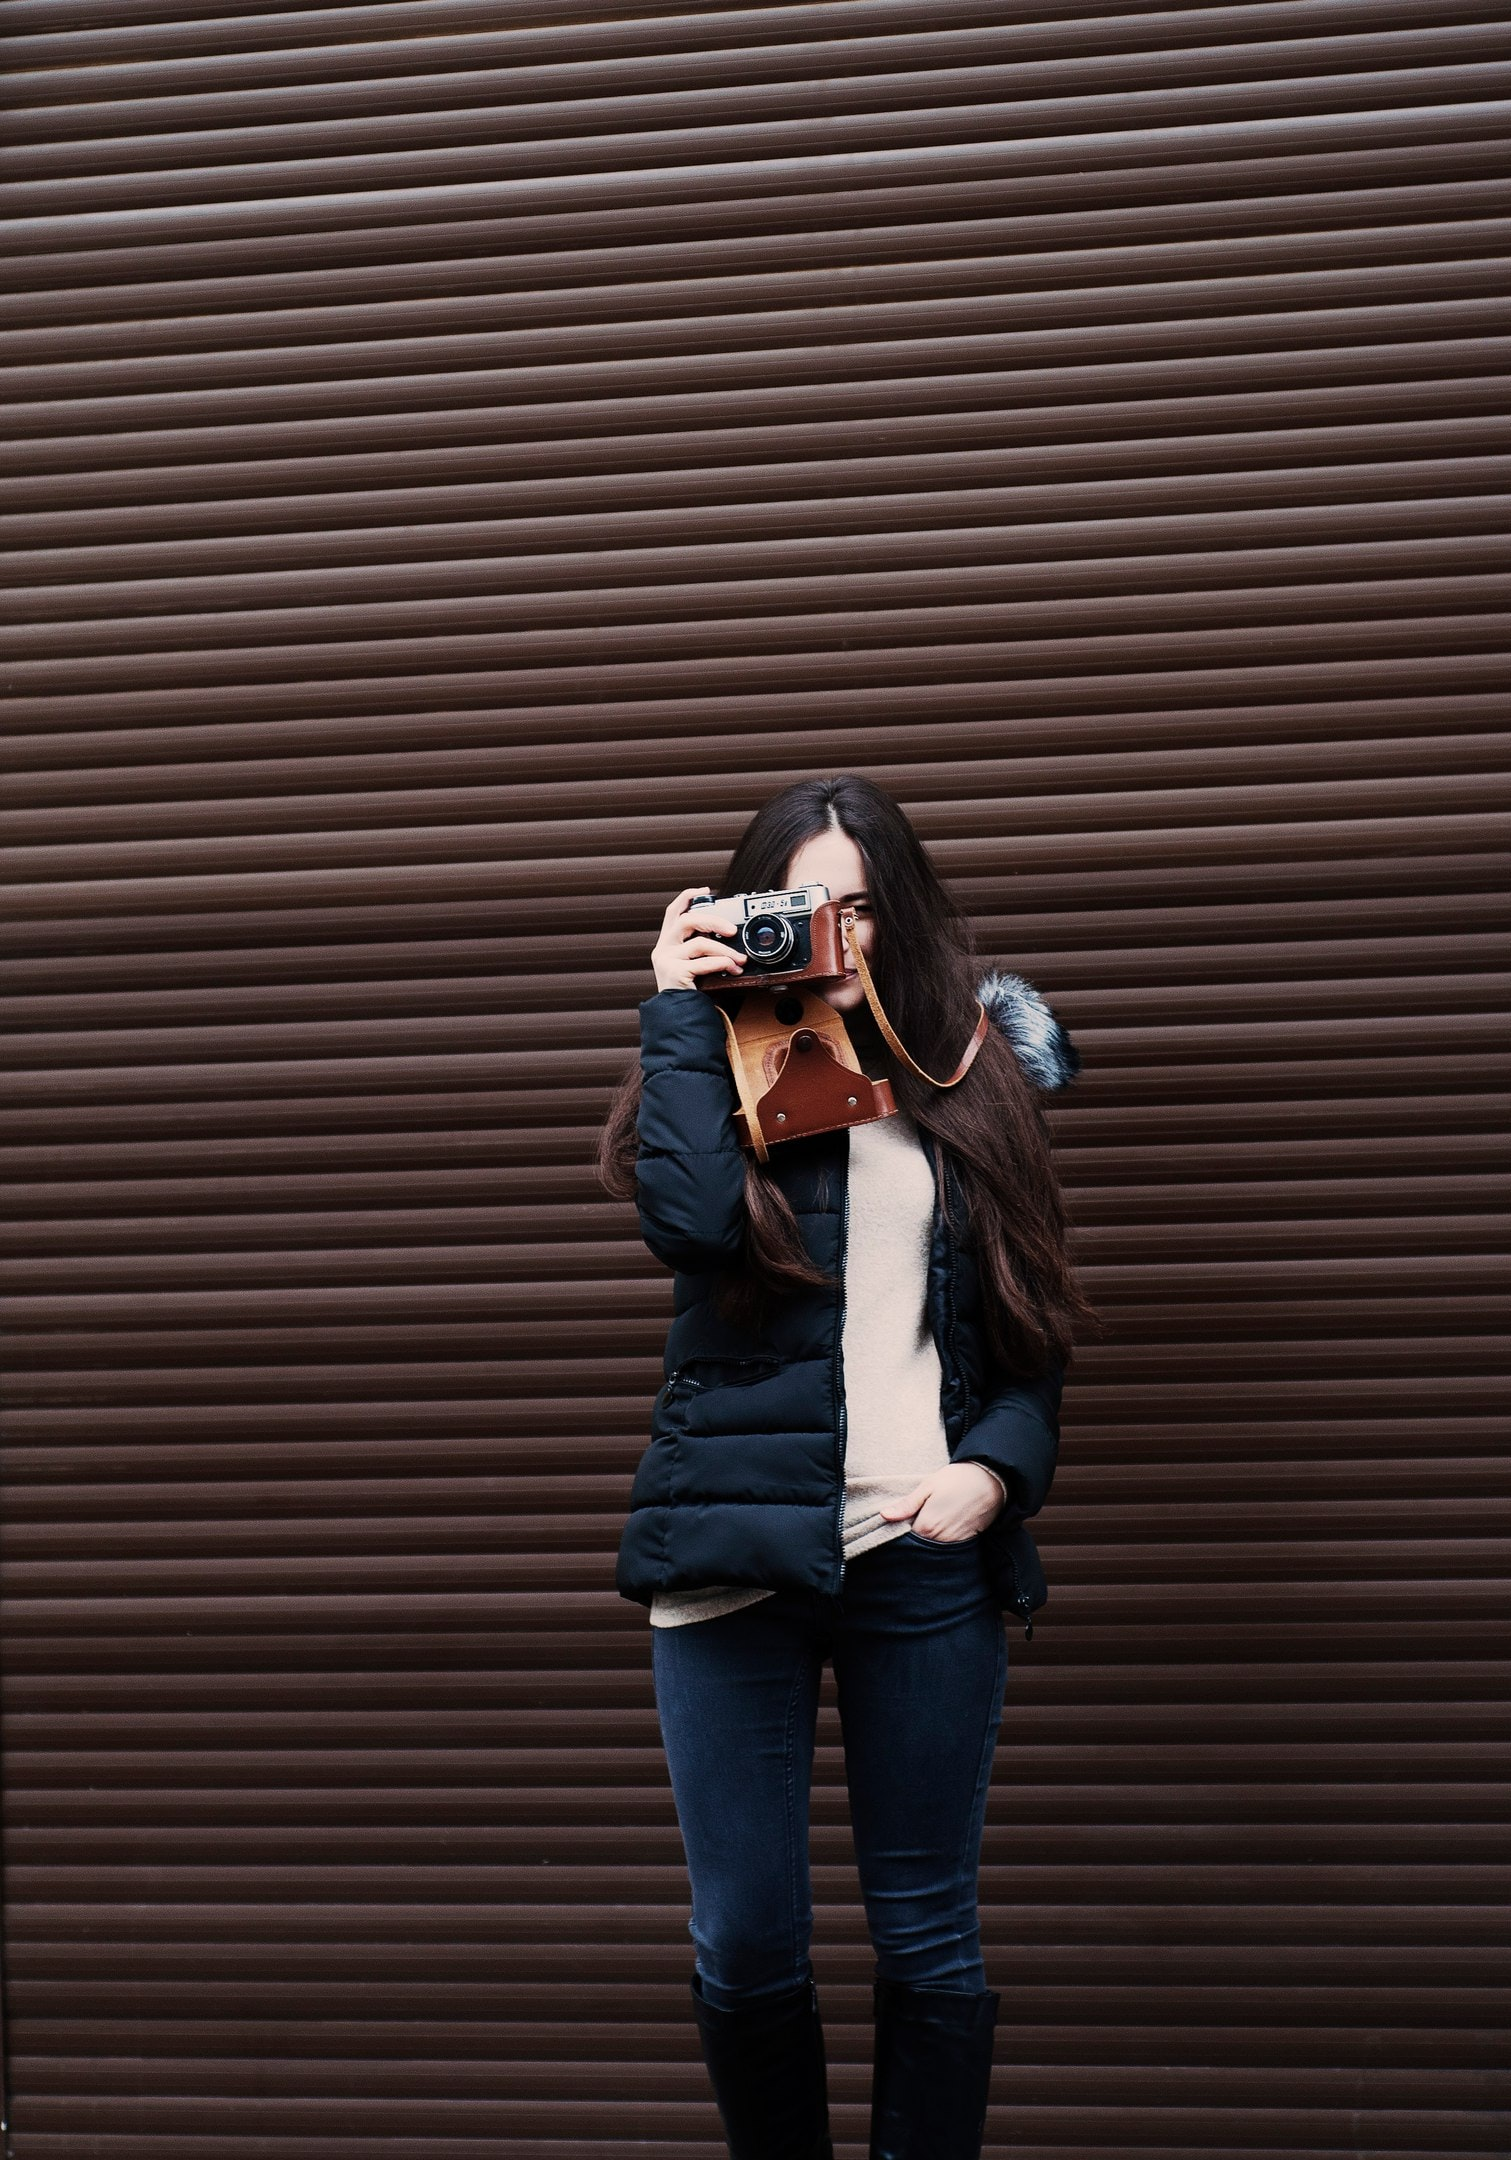 Woman takes a picture with a vintage camera outside